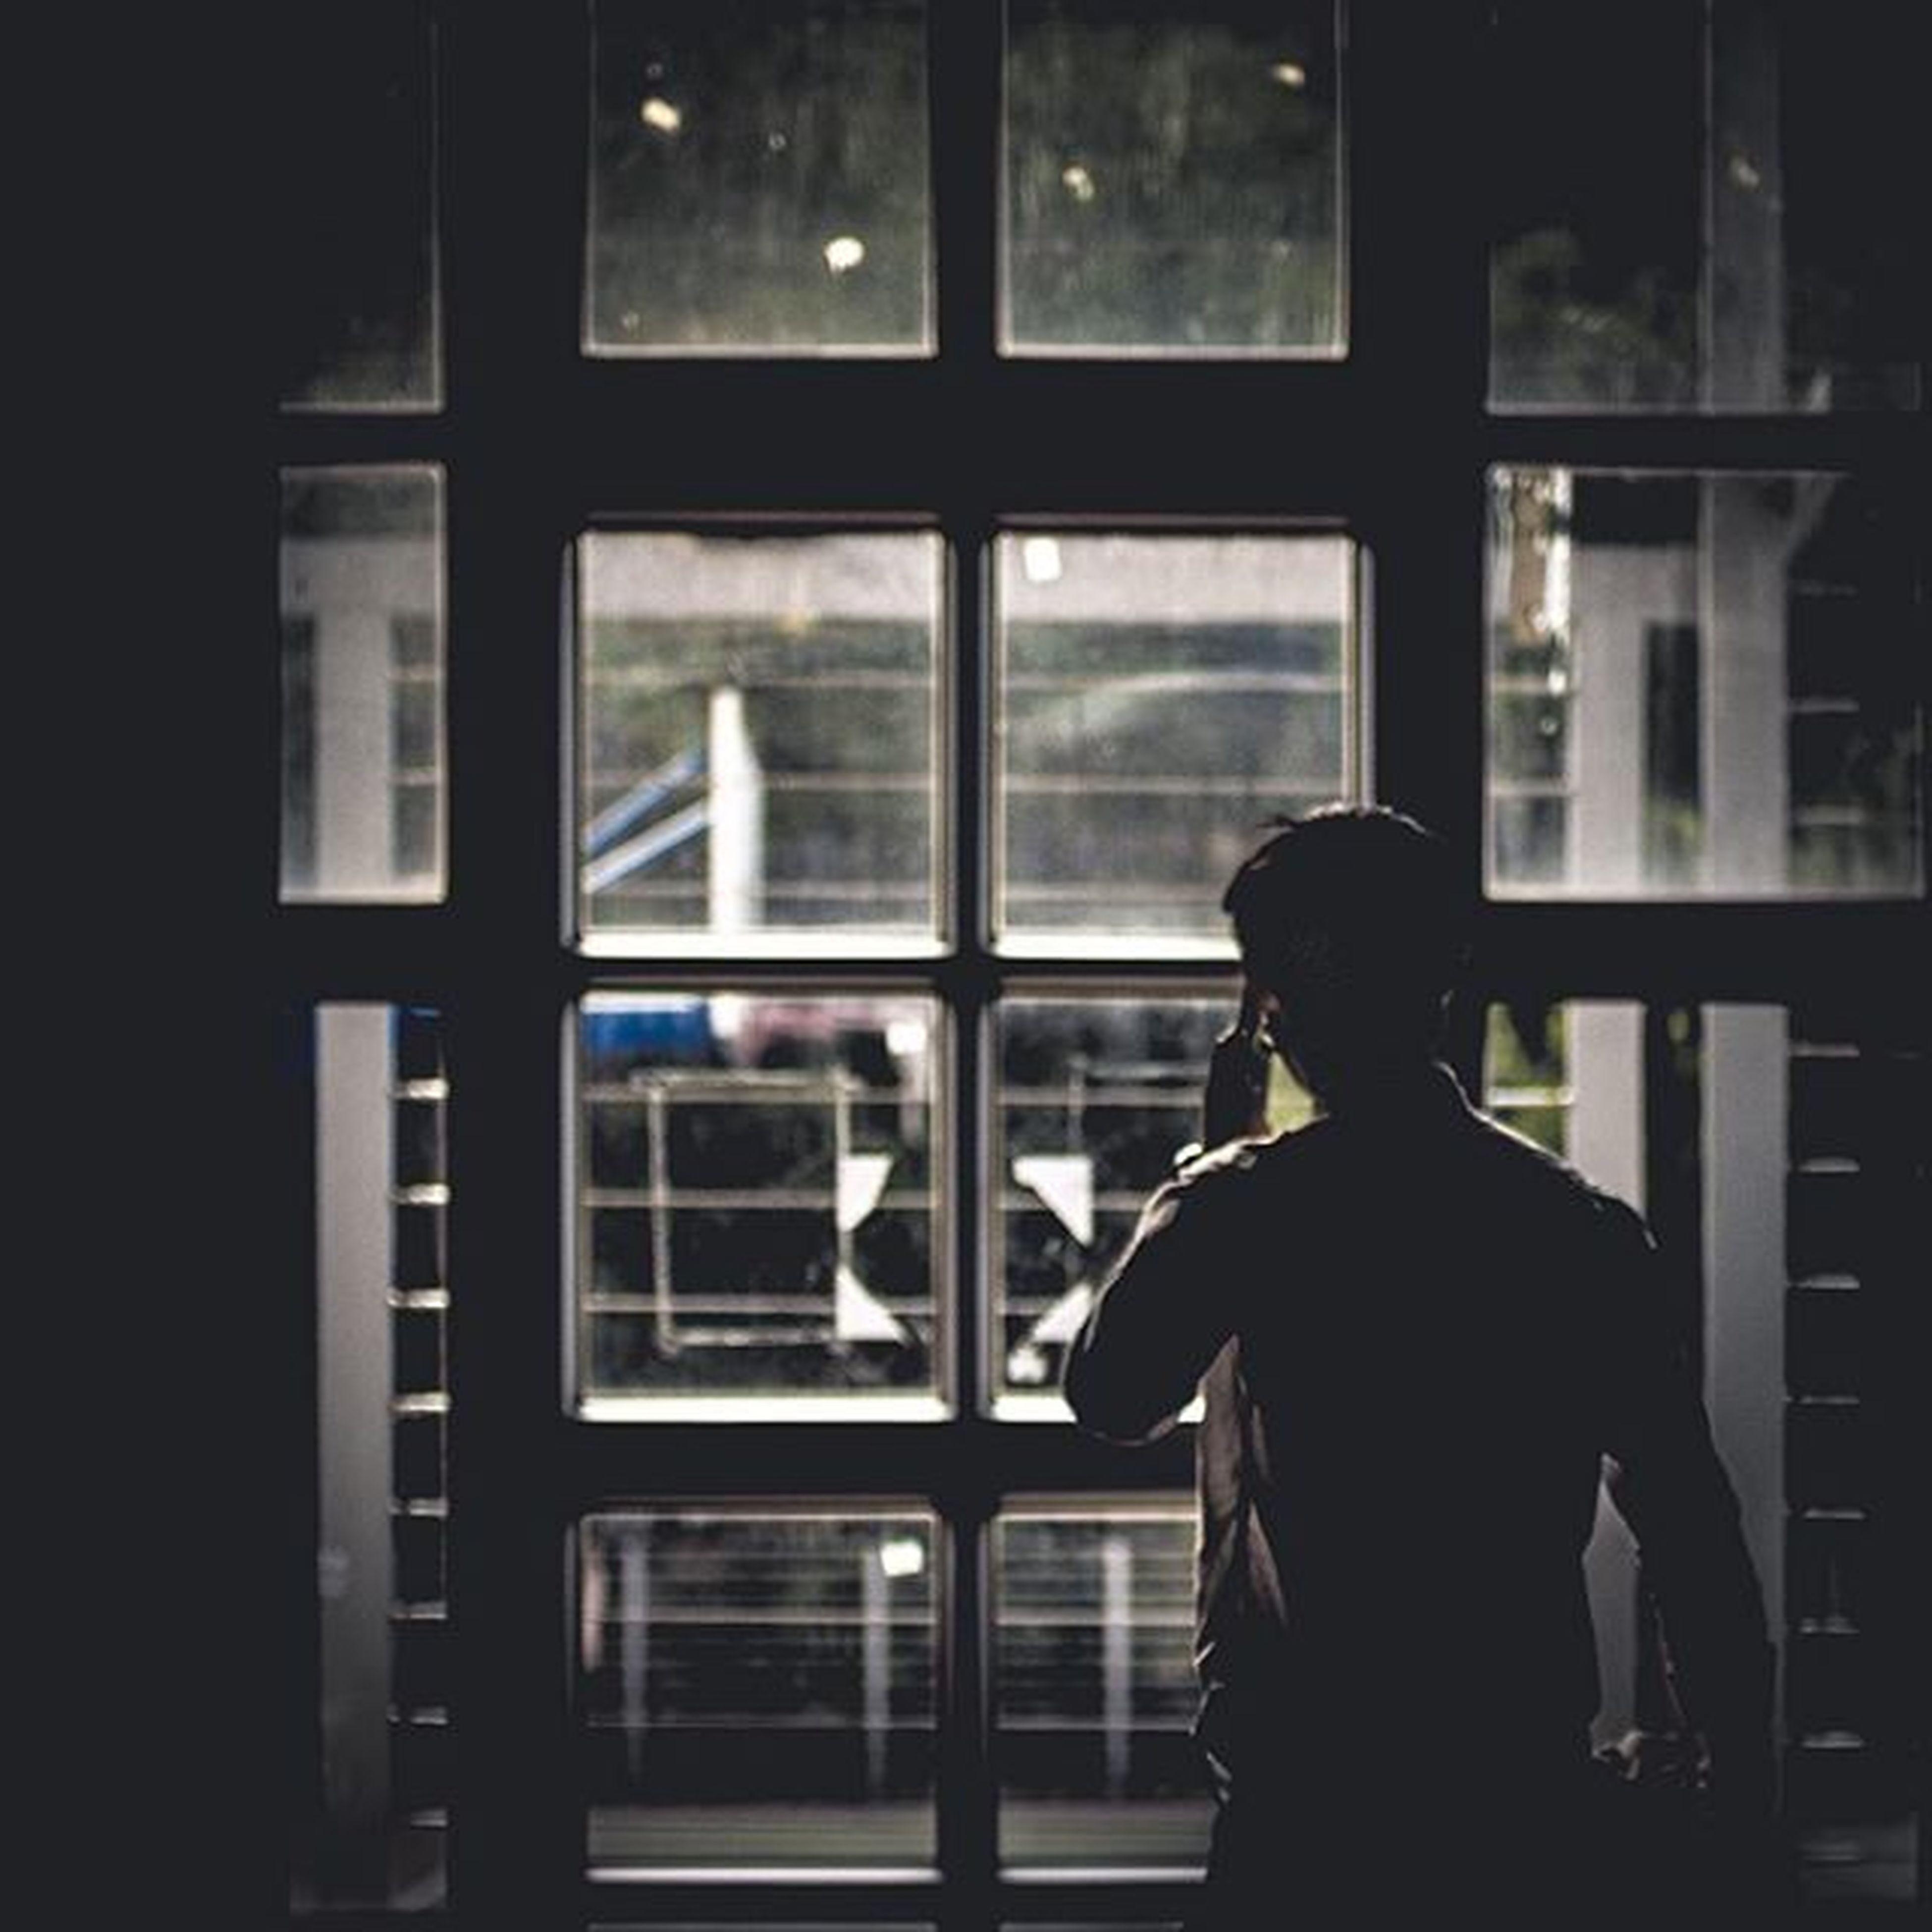 indoors, window, men, rear view, glass - material, lifestyles, standing, transparent, leisure activity, person, silhouette, built structure, architecture, three quarter length, looking through window, waist up, side view, sitting